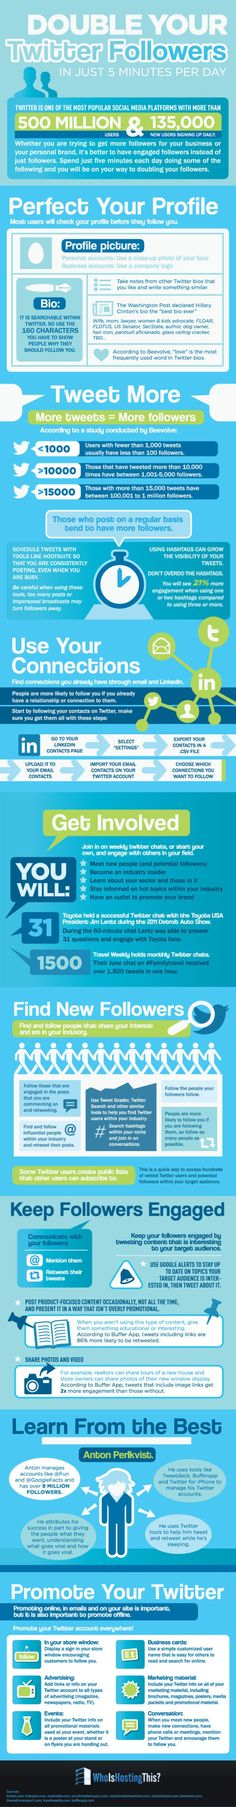 Double your Twitter Followers #infografia #infographic #socialmedia